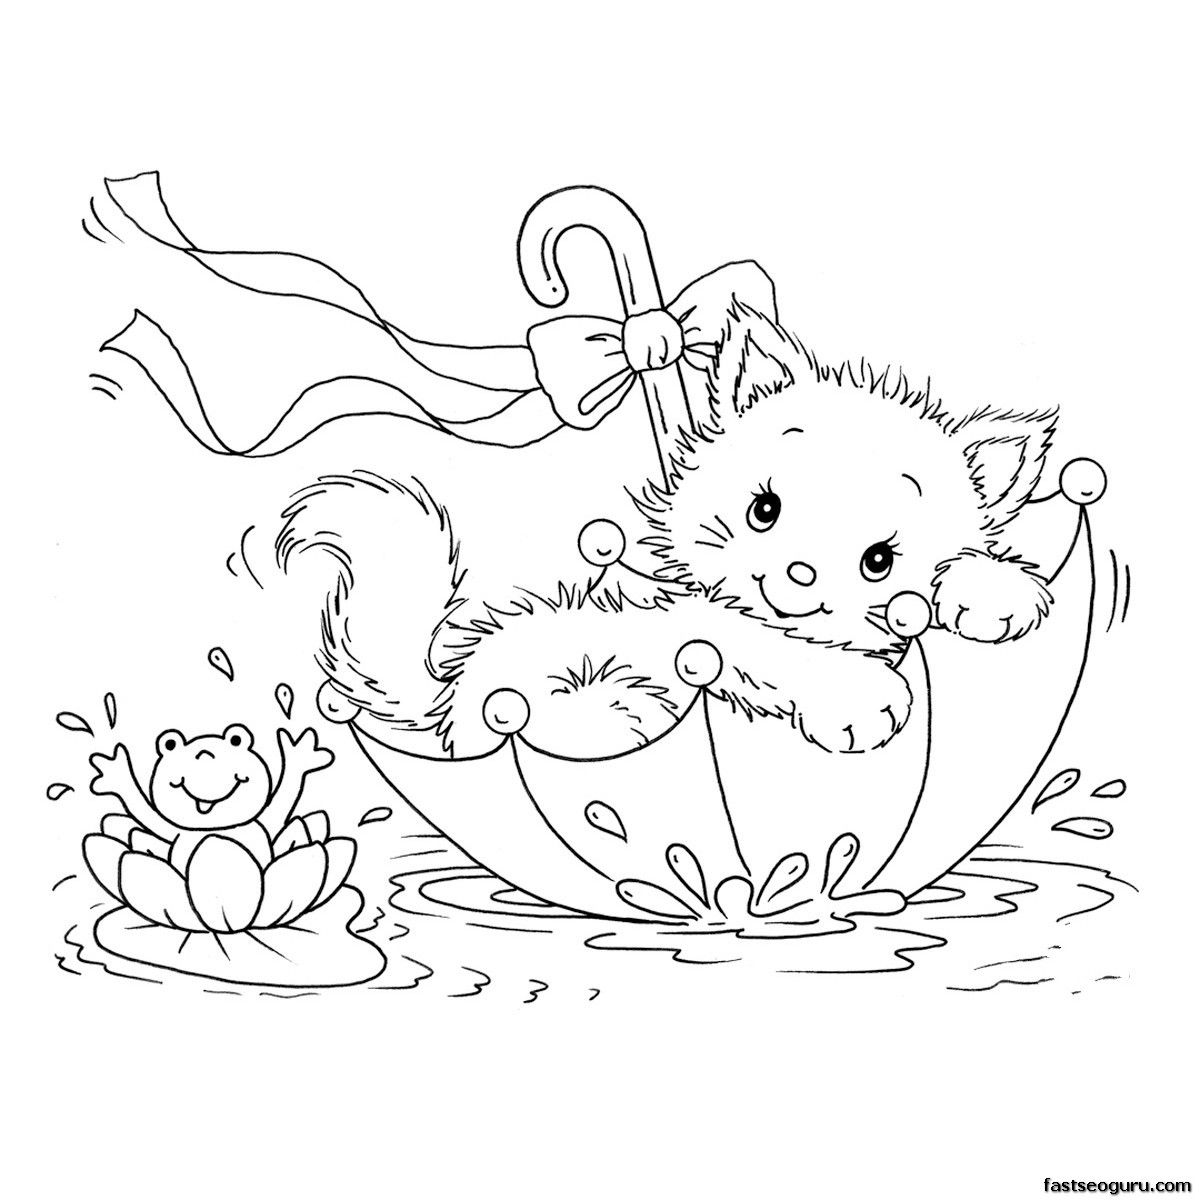 cat coloring pages free large images - Spring Coloring Sheets Free Printable